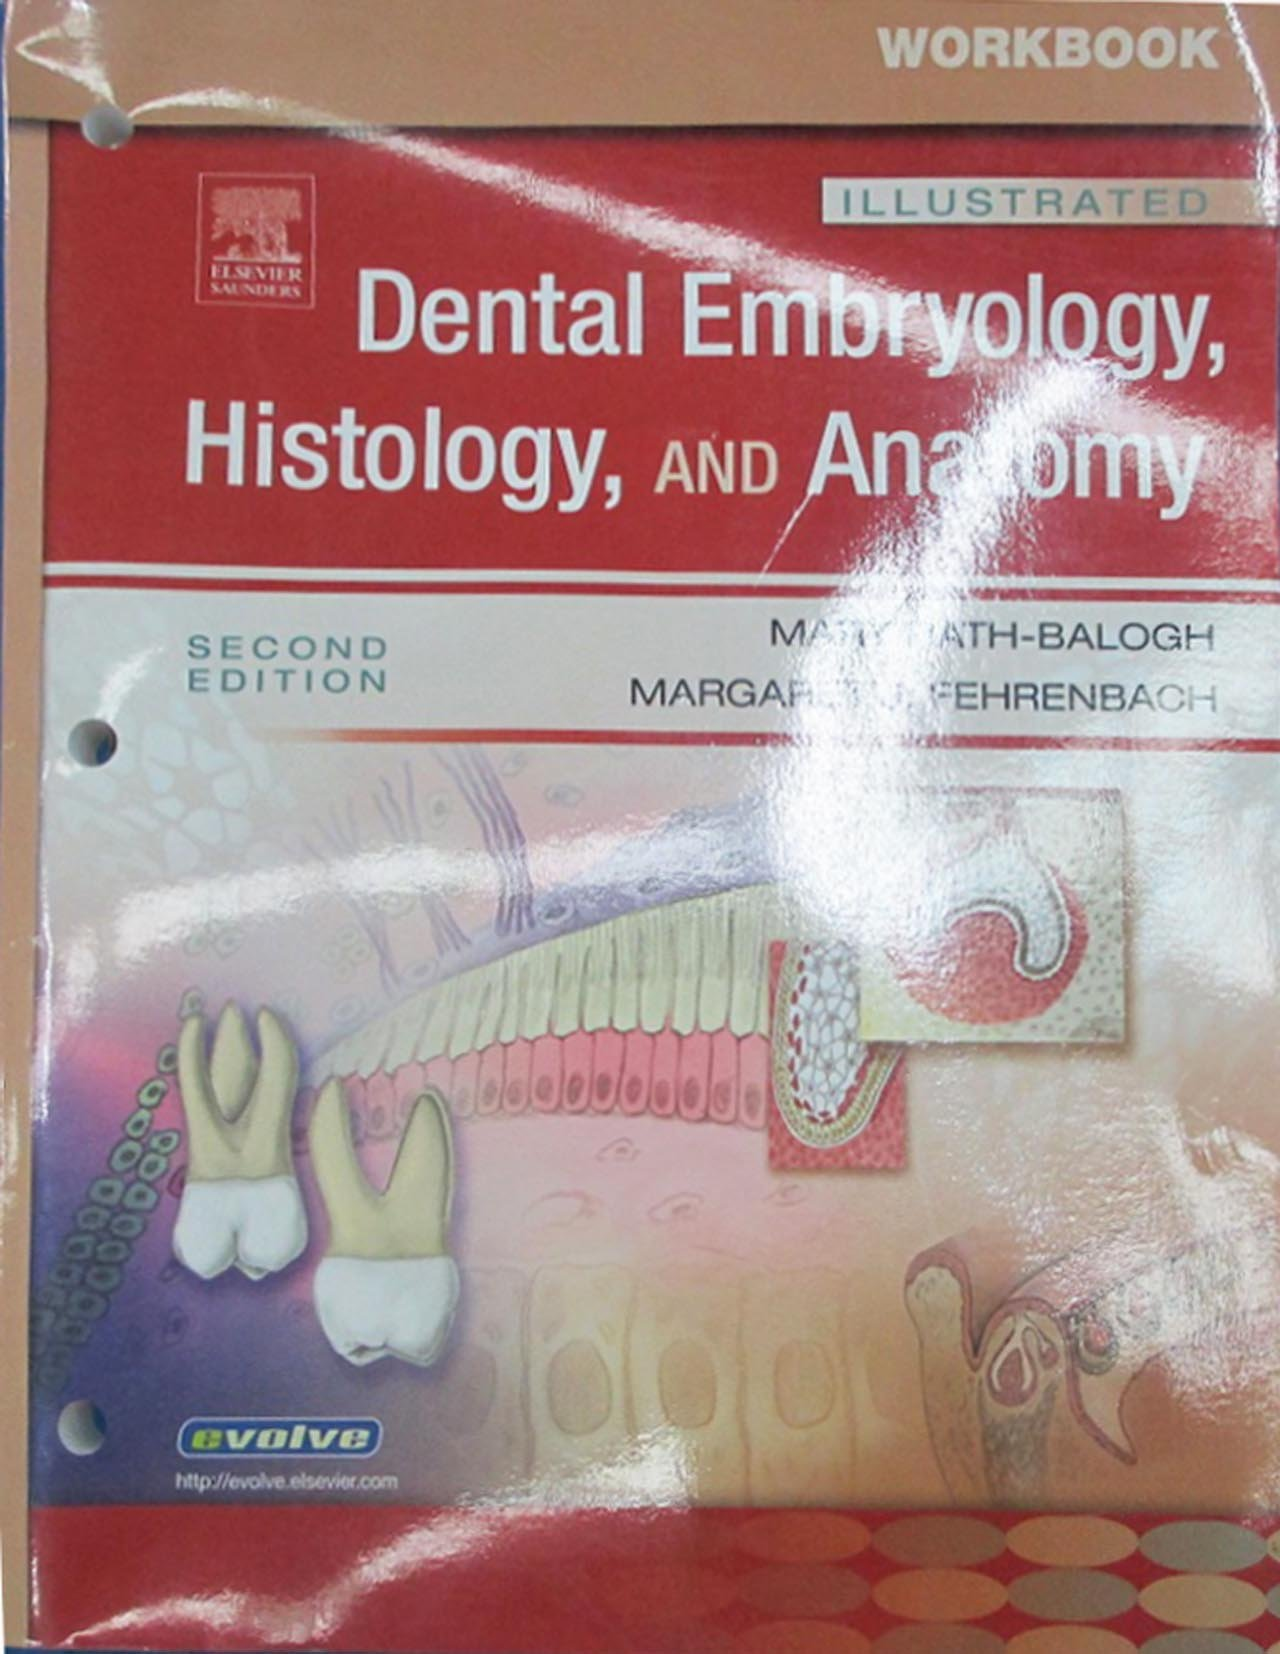 Workbook for Illustrated Dental Embryology, Histology, and Anatomy ...